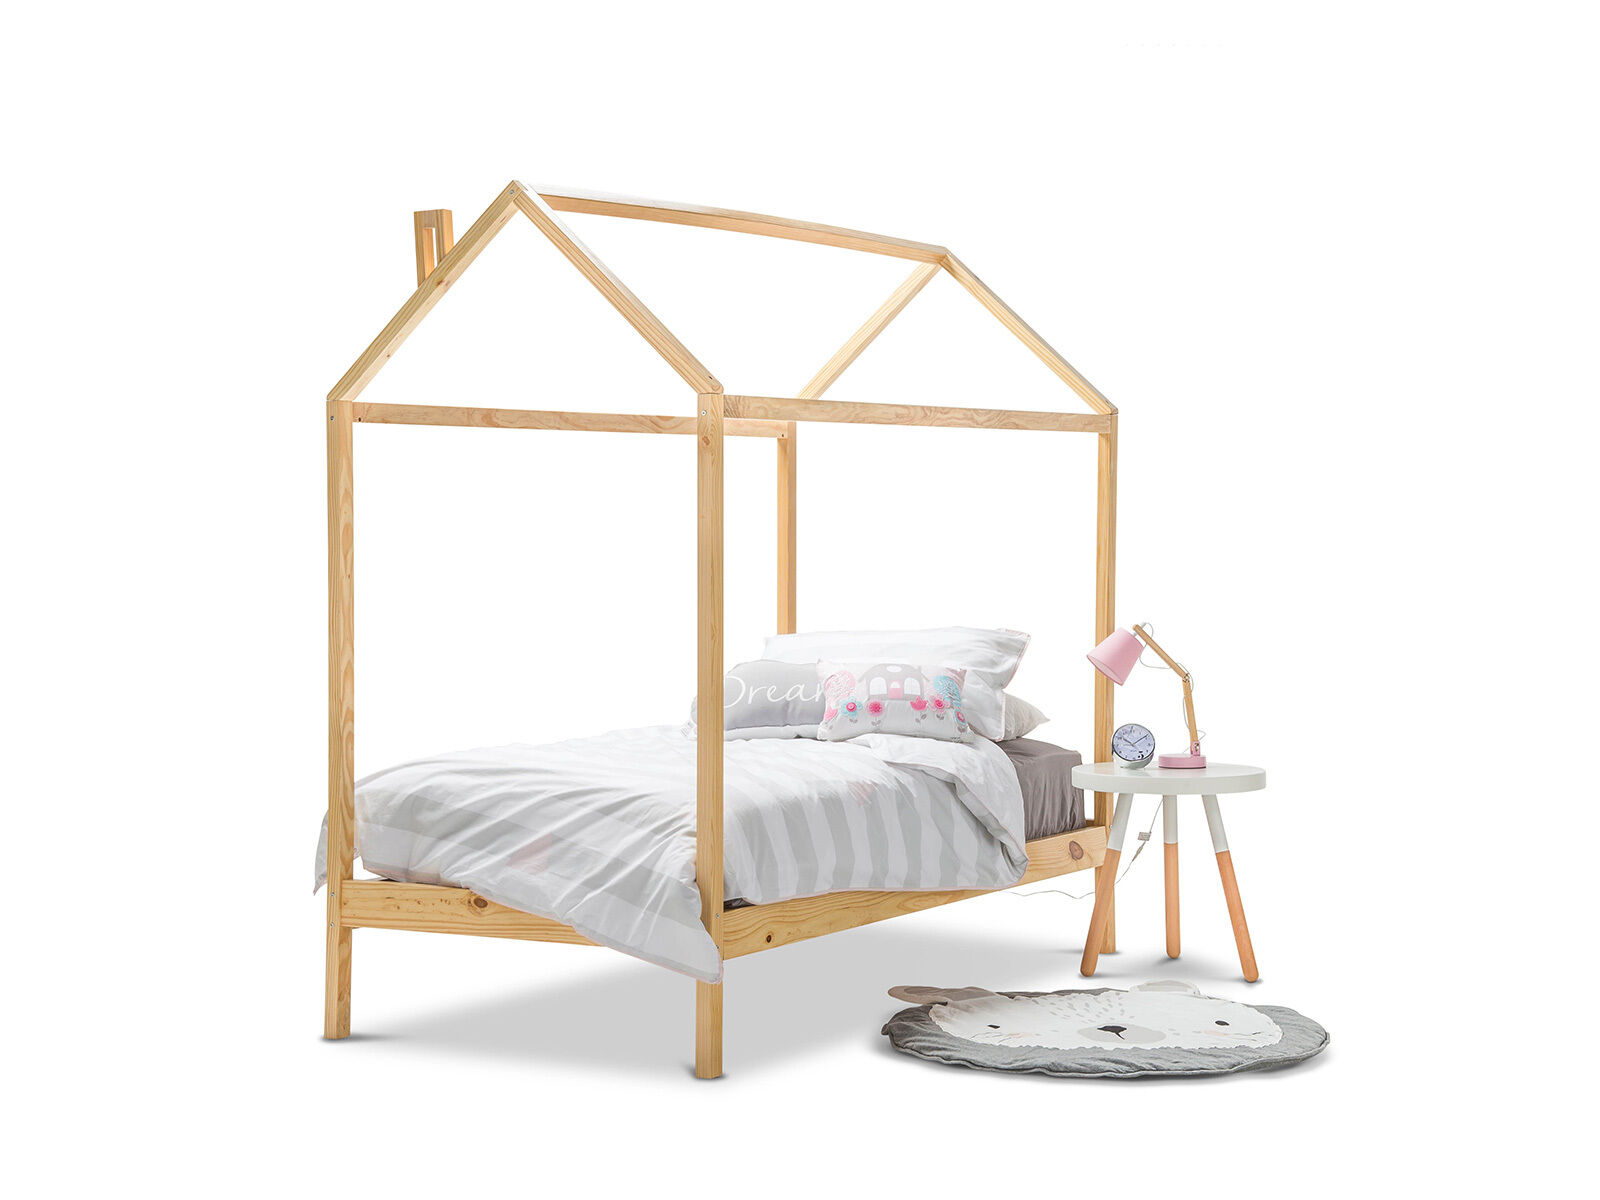 Scandinavian Wood Timber Single Size House Shaped Bed Frame for Kids